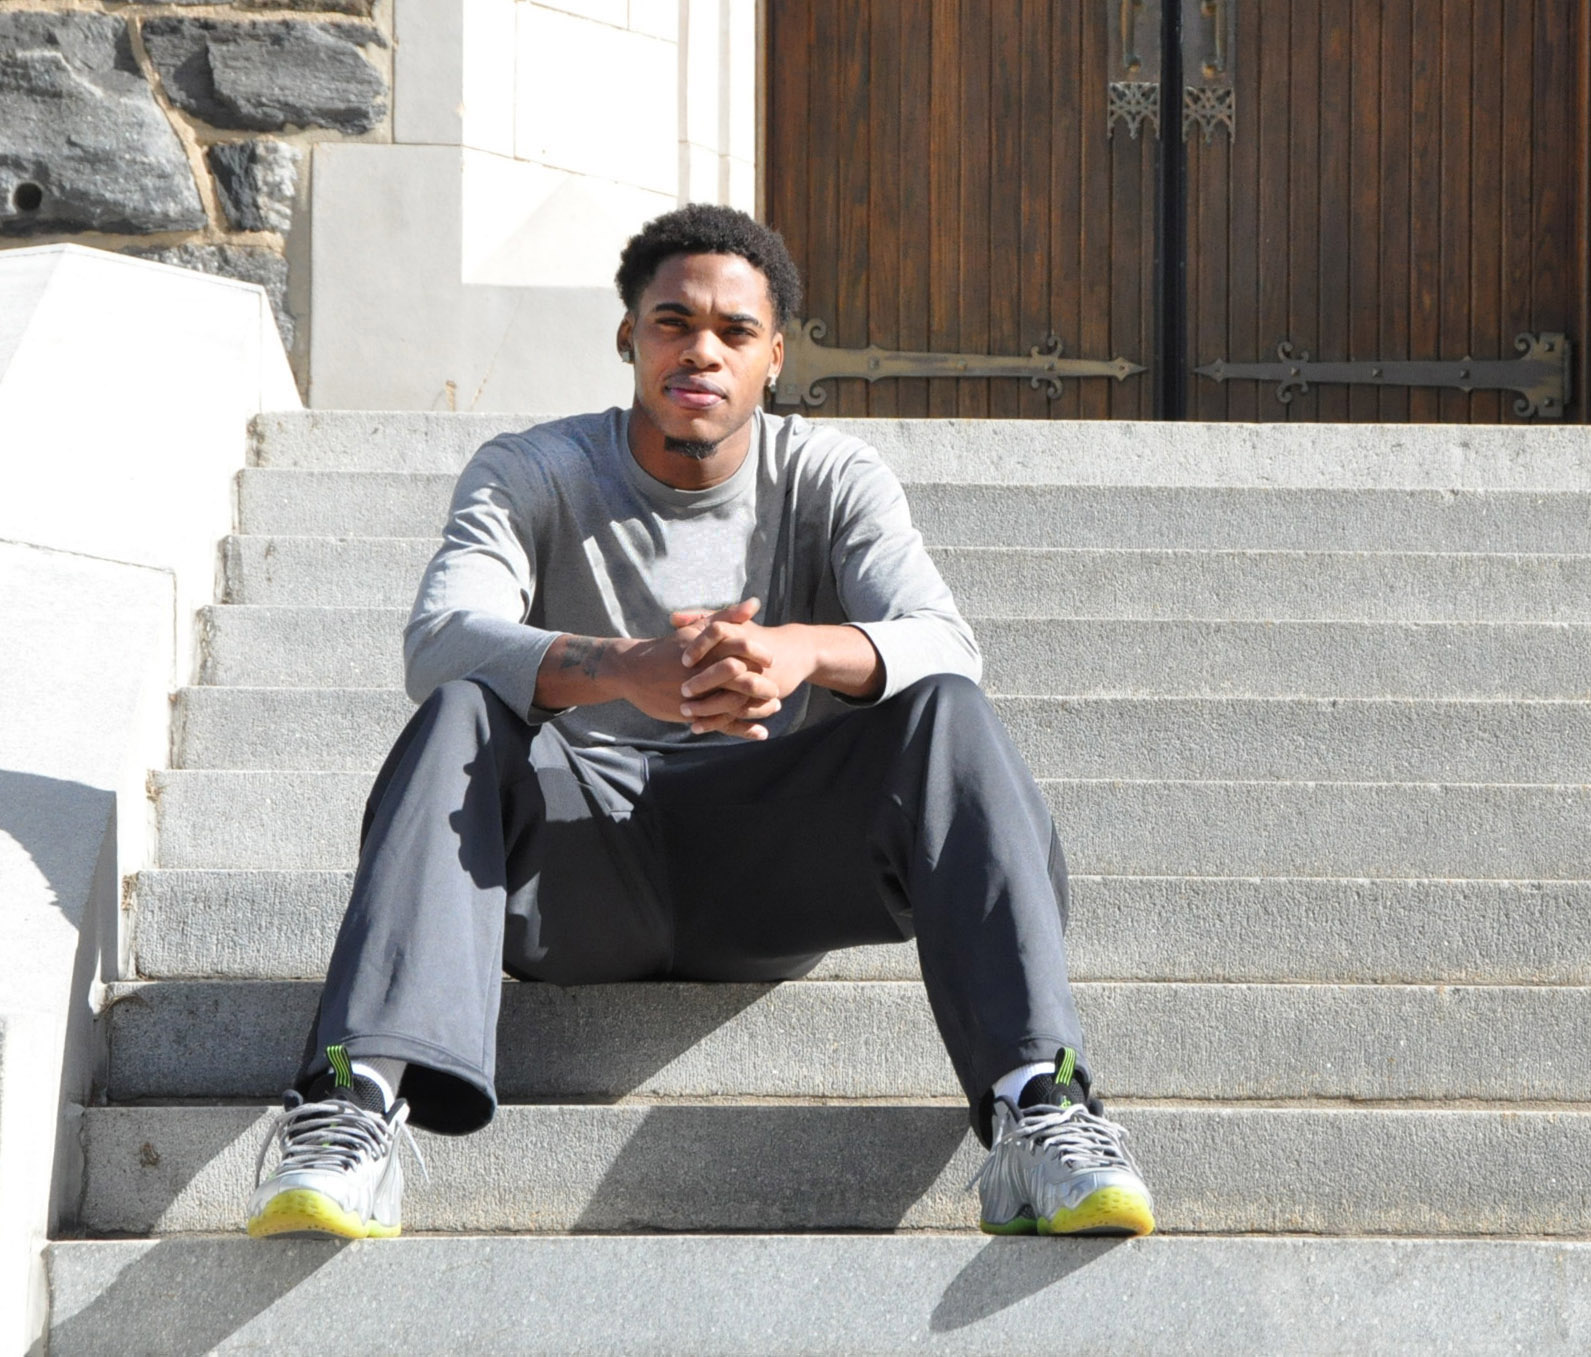 Hawkins outside his home court, the Rose Hill Gymnasium Photo by Mary Awad